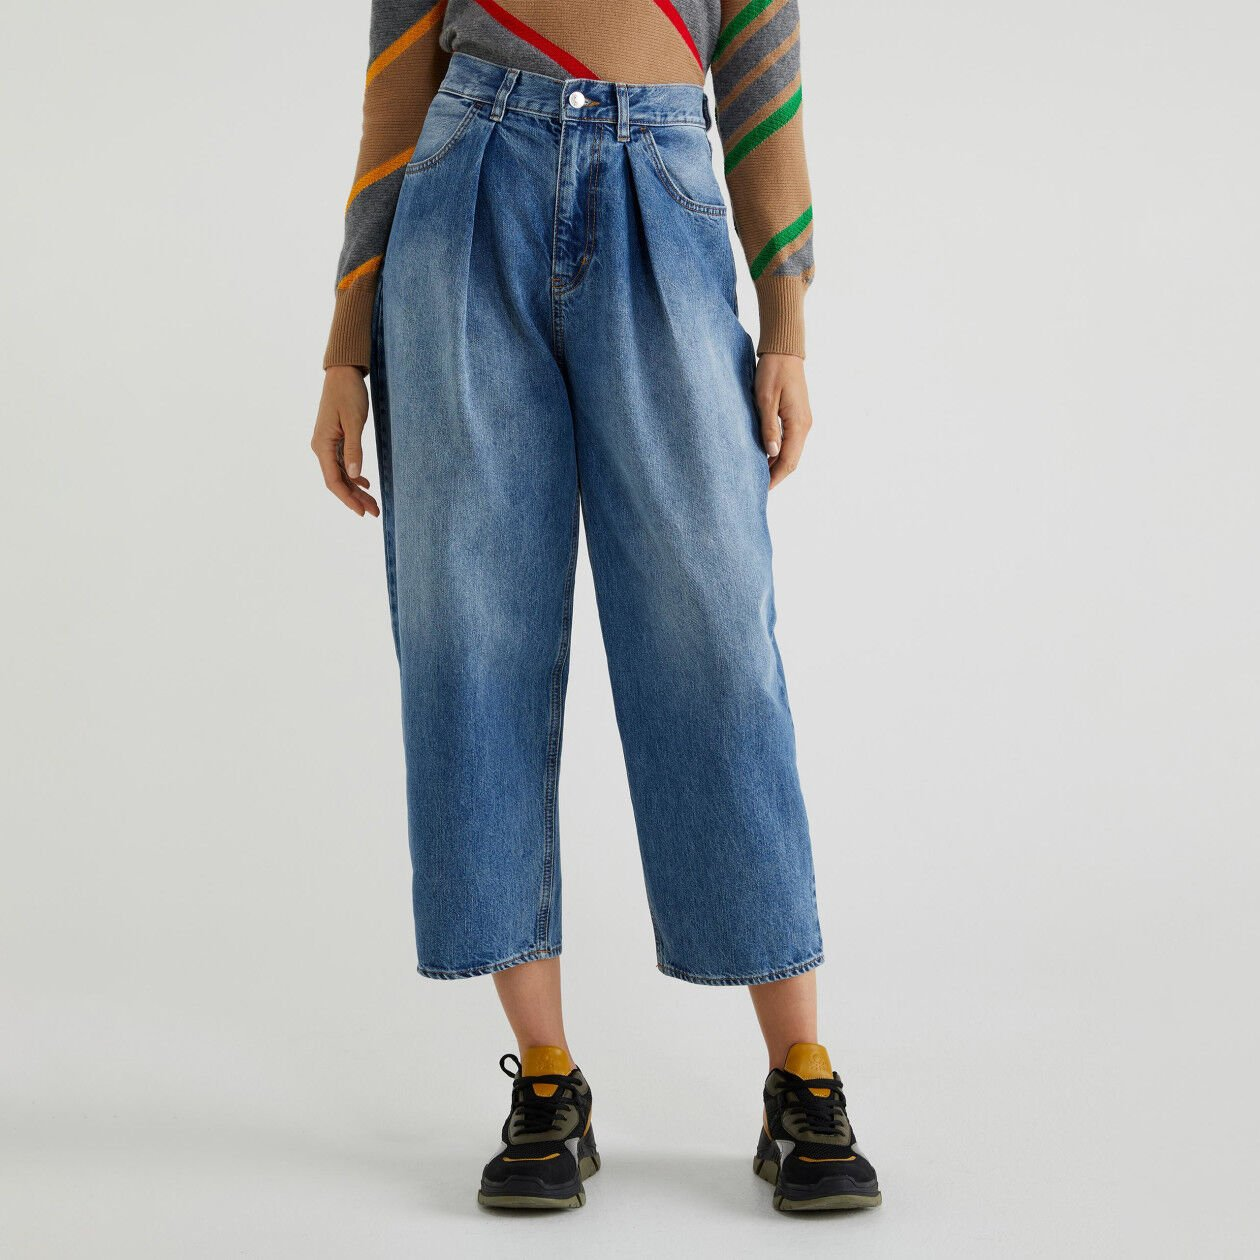 Boyfriend jeans with creases